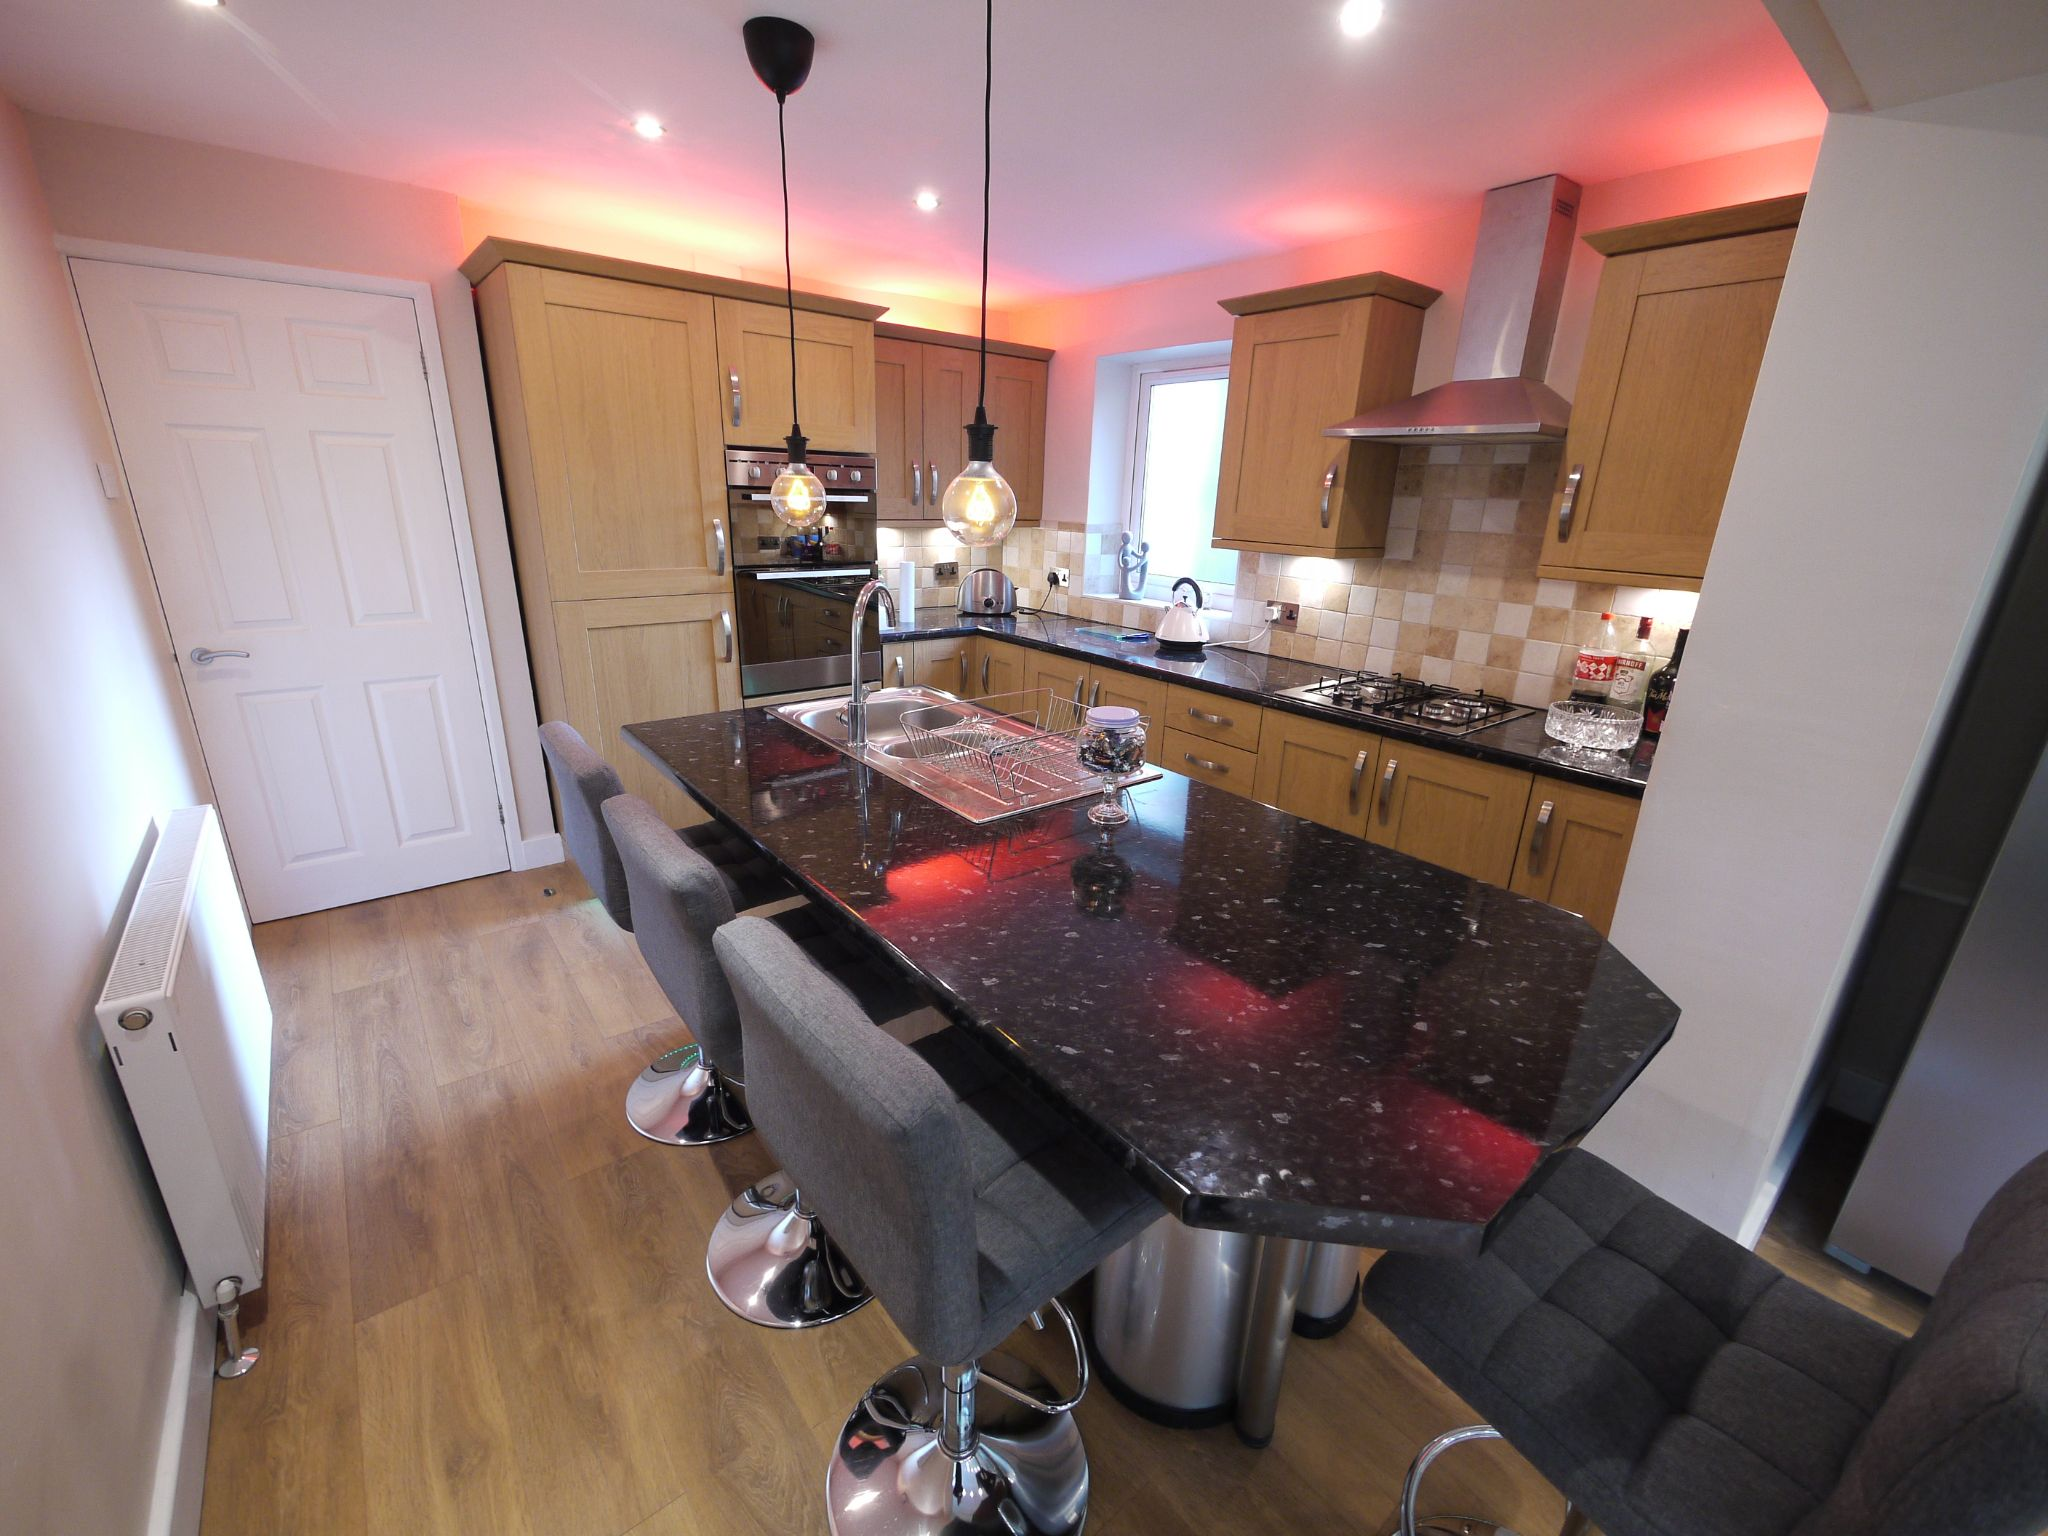 4 bedroom semi-detached house SSTC in Brighouse - Dining Kitchen 3.